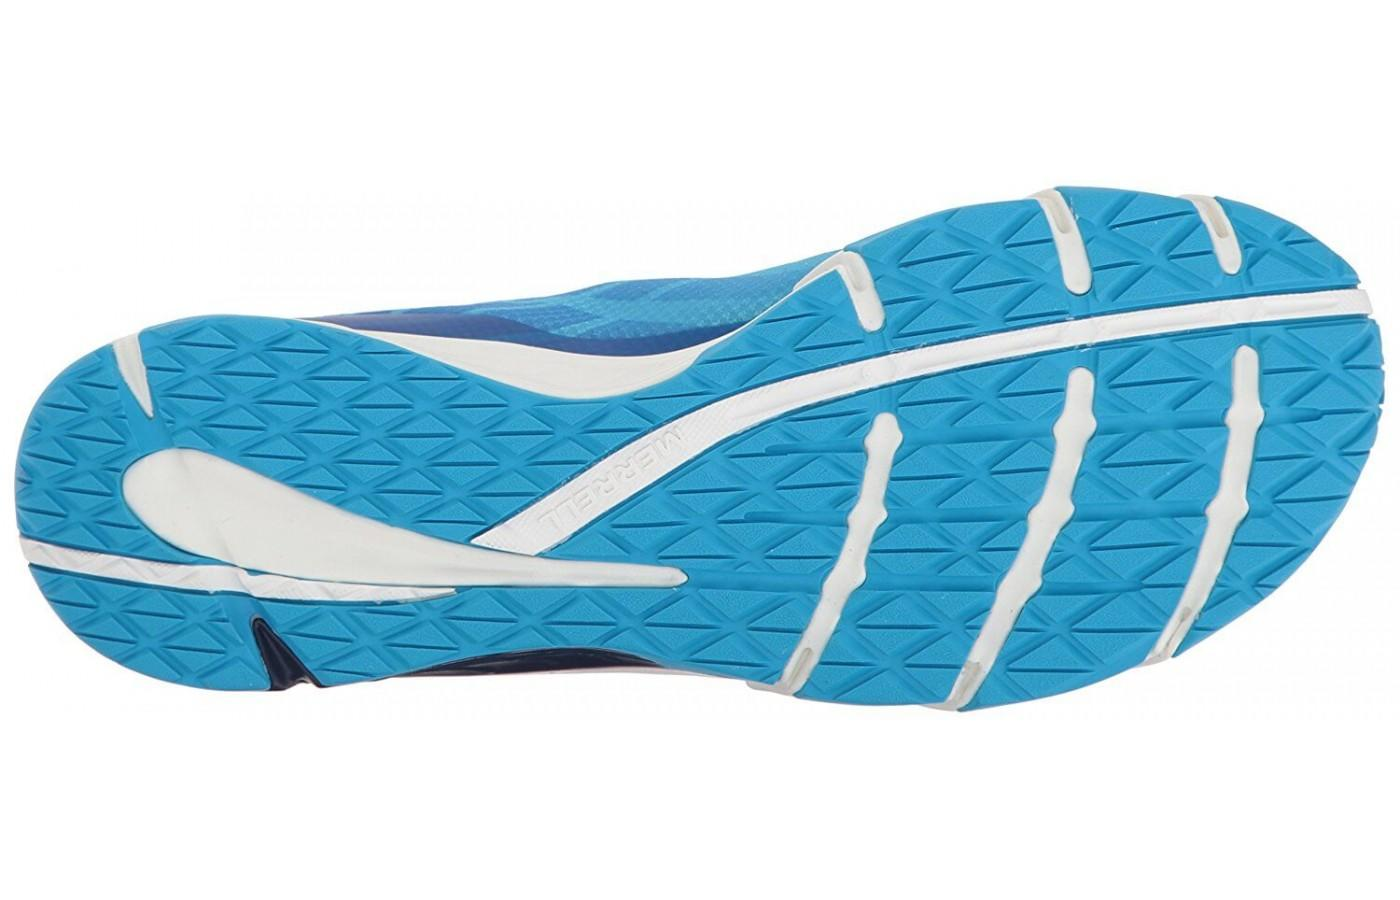 The outsole of the shoe incorporates maximum grip, making these shoes great for the trail!